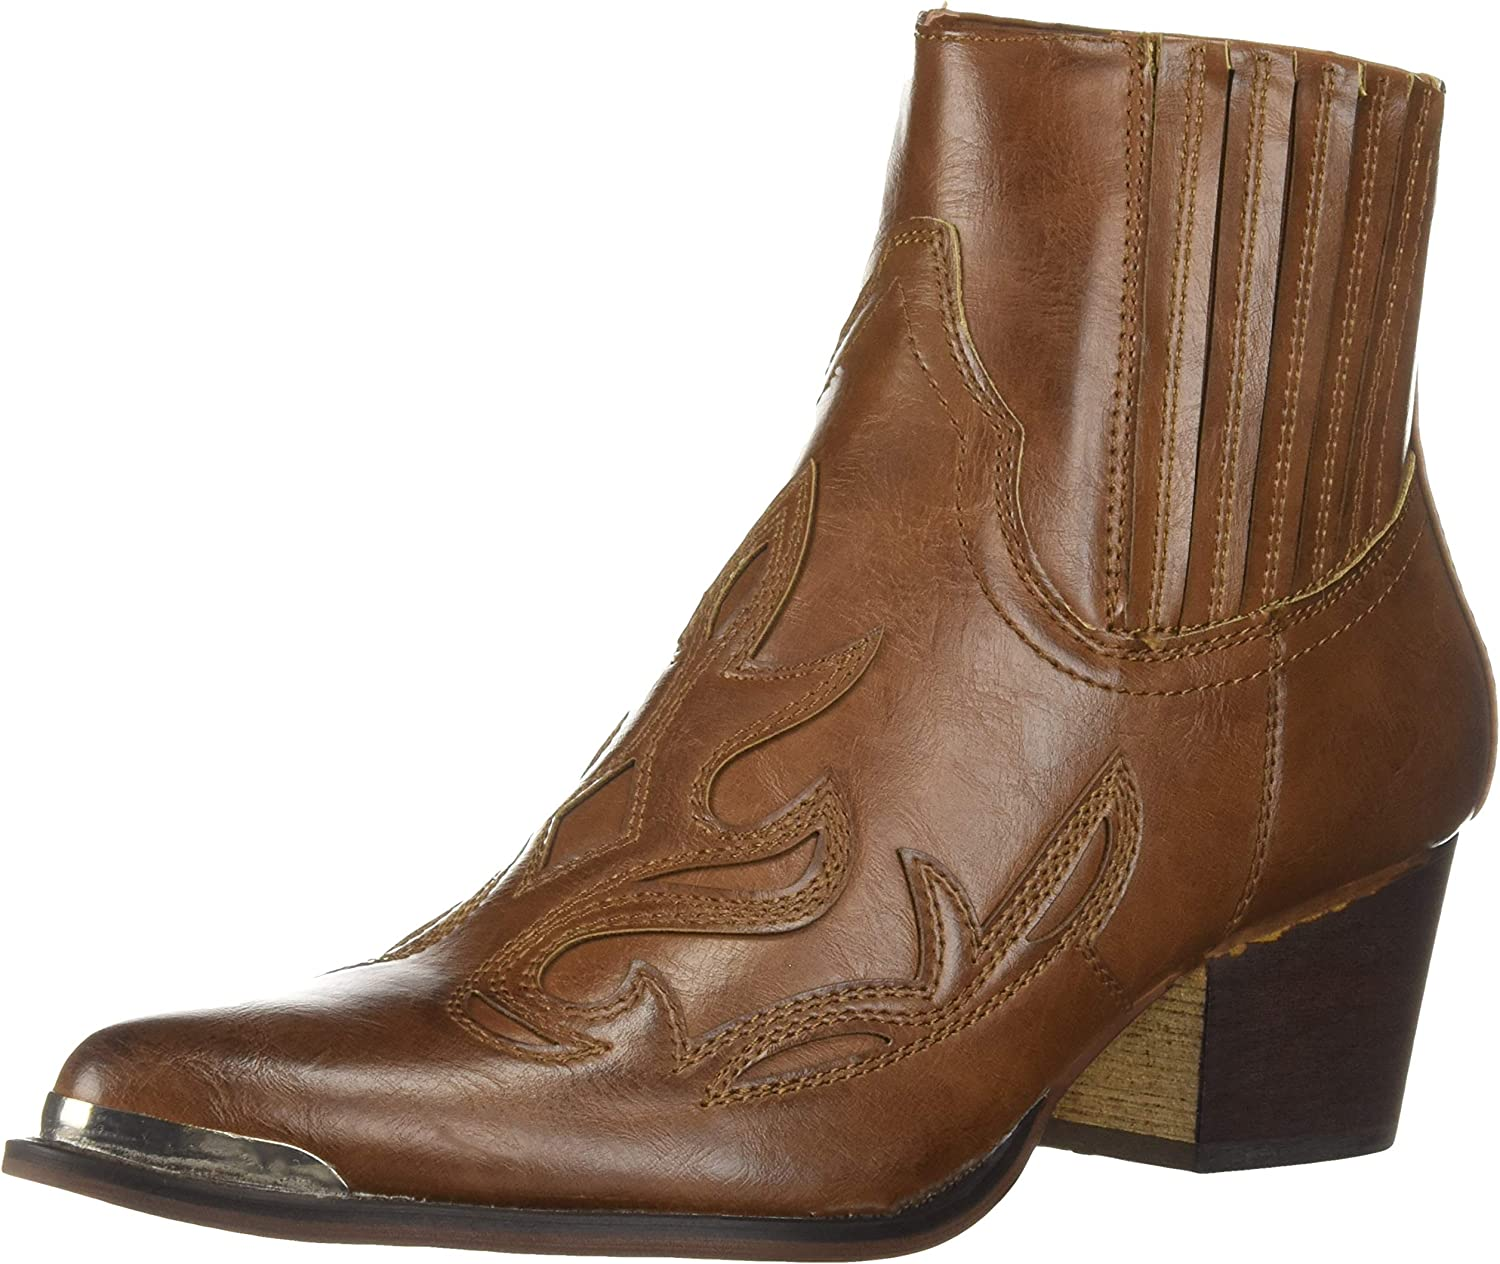 YOKI Womens Western Style Stack Heel Boots